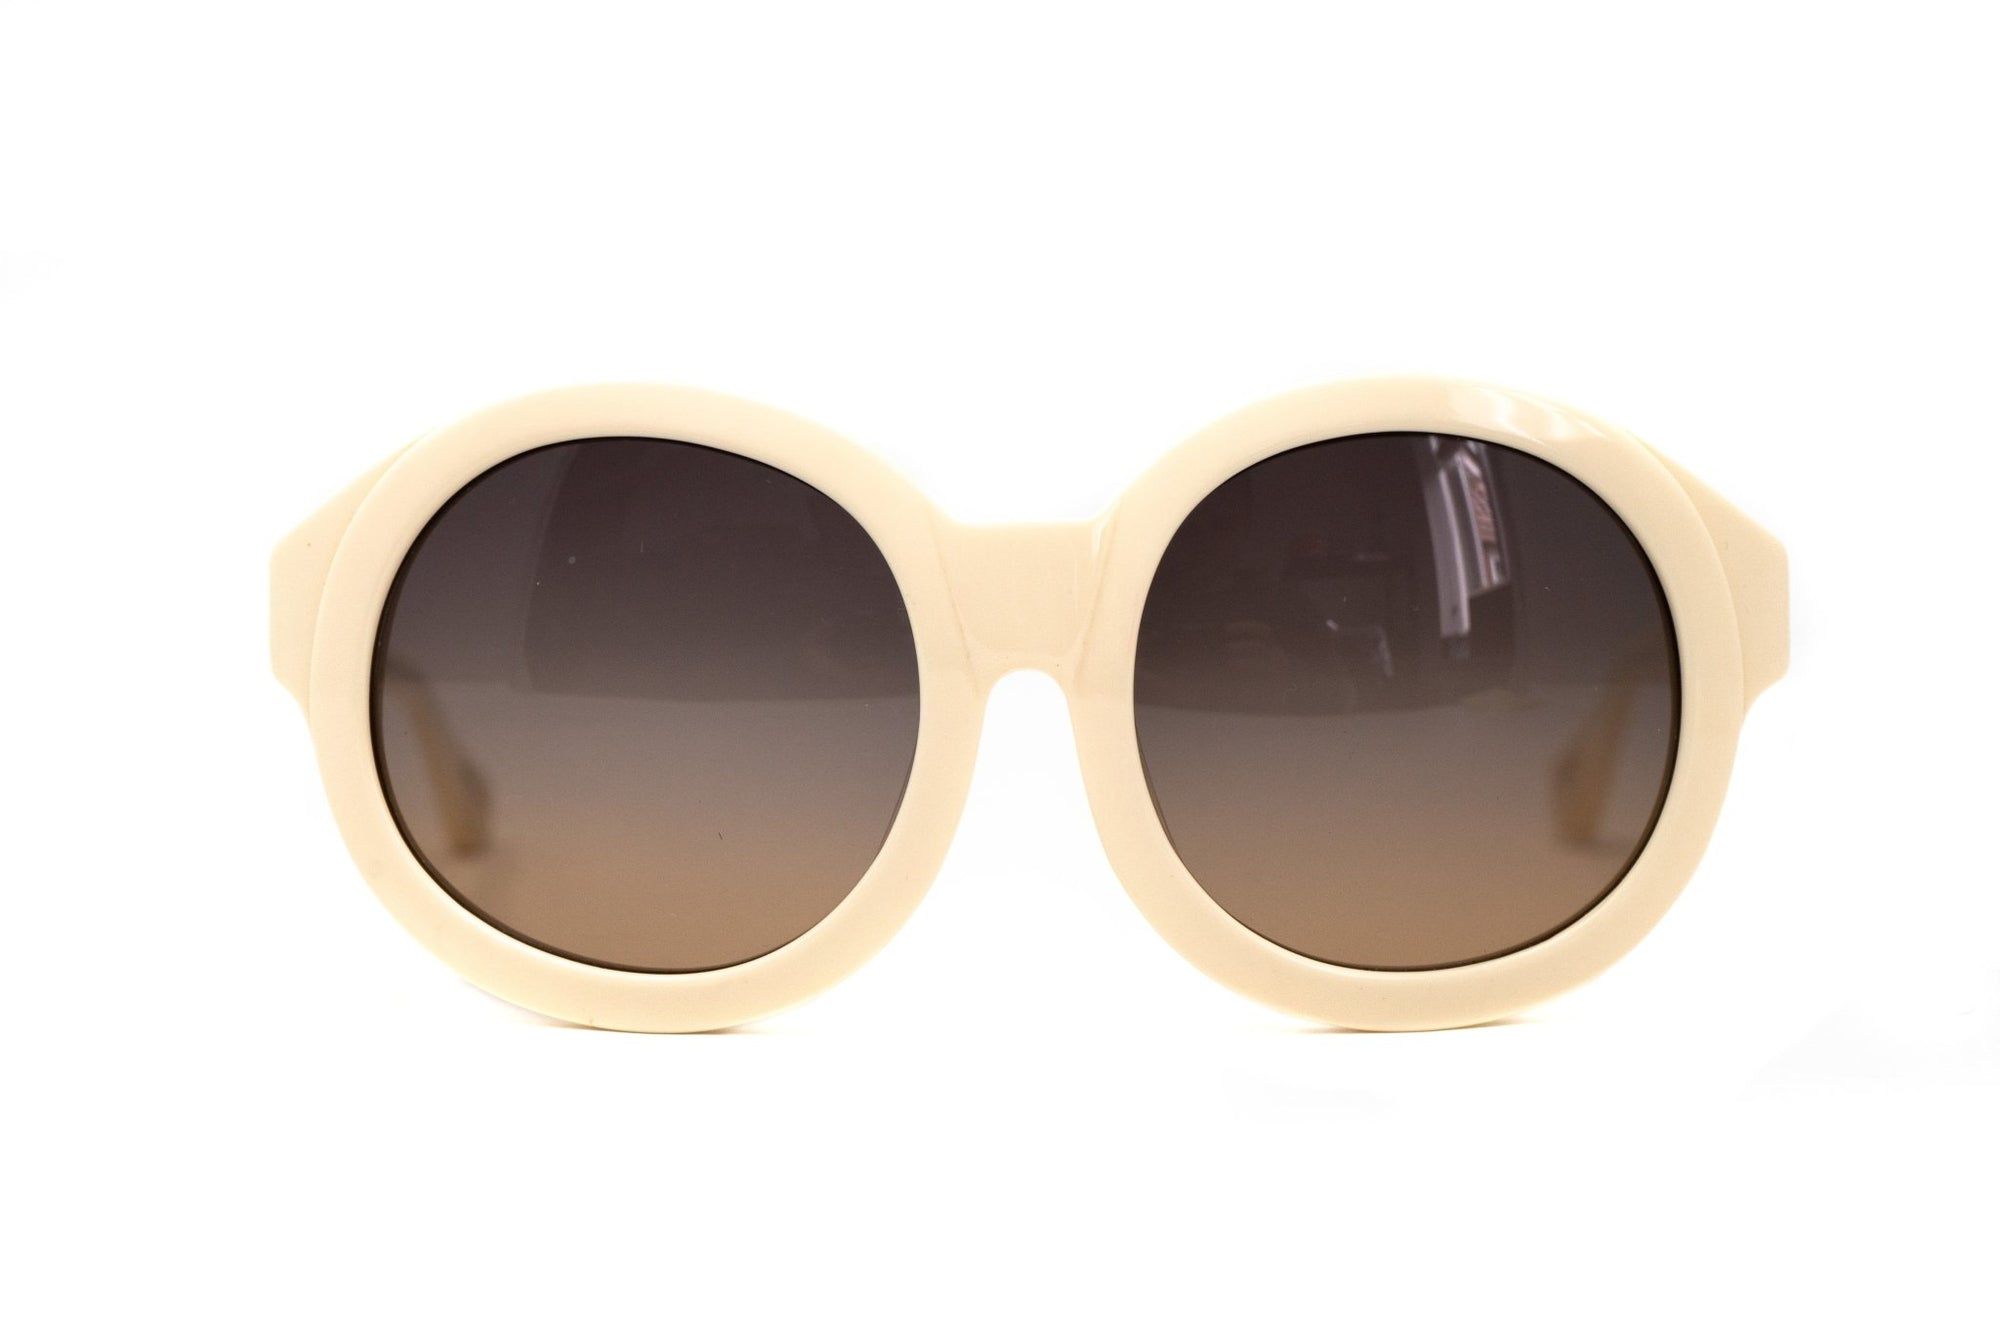 Eley Kishimoto Sunglasses Oversized Round Cream With Brown Category 3 Lenses EK27C4SUN - Watches & Crystals